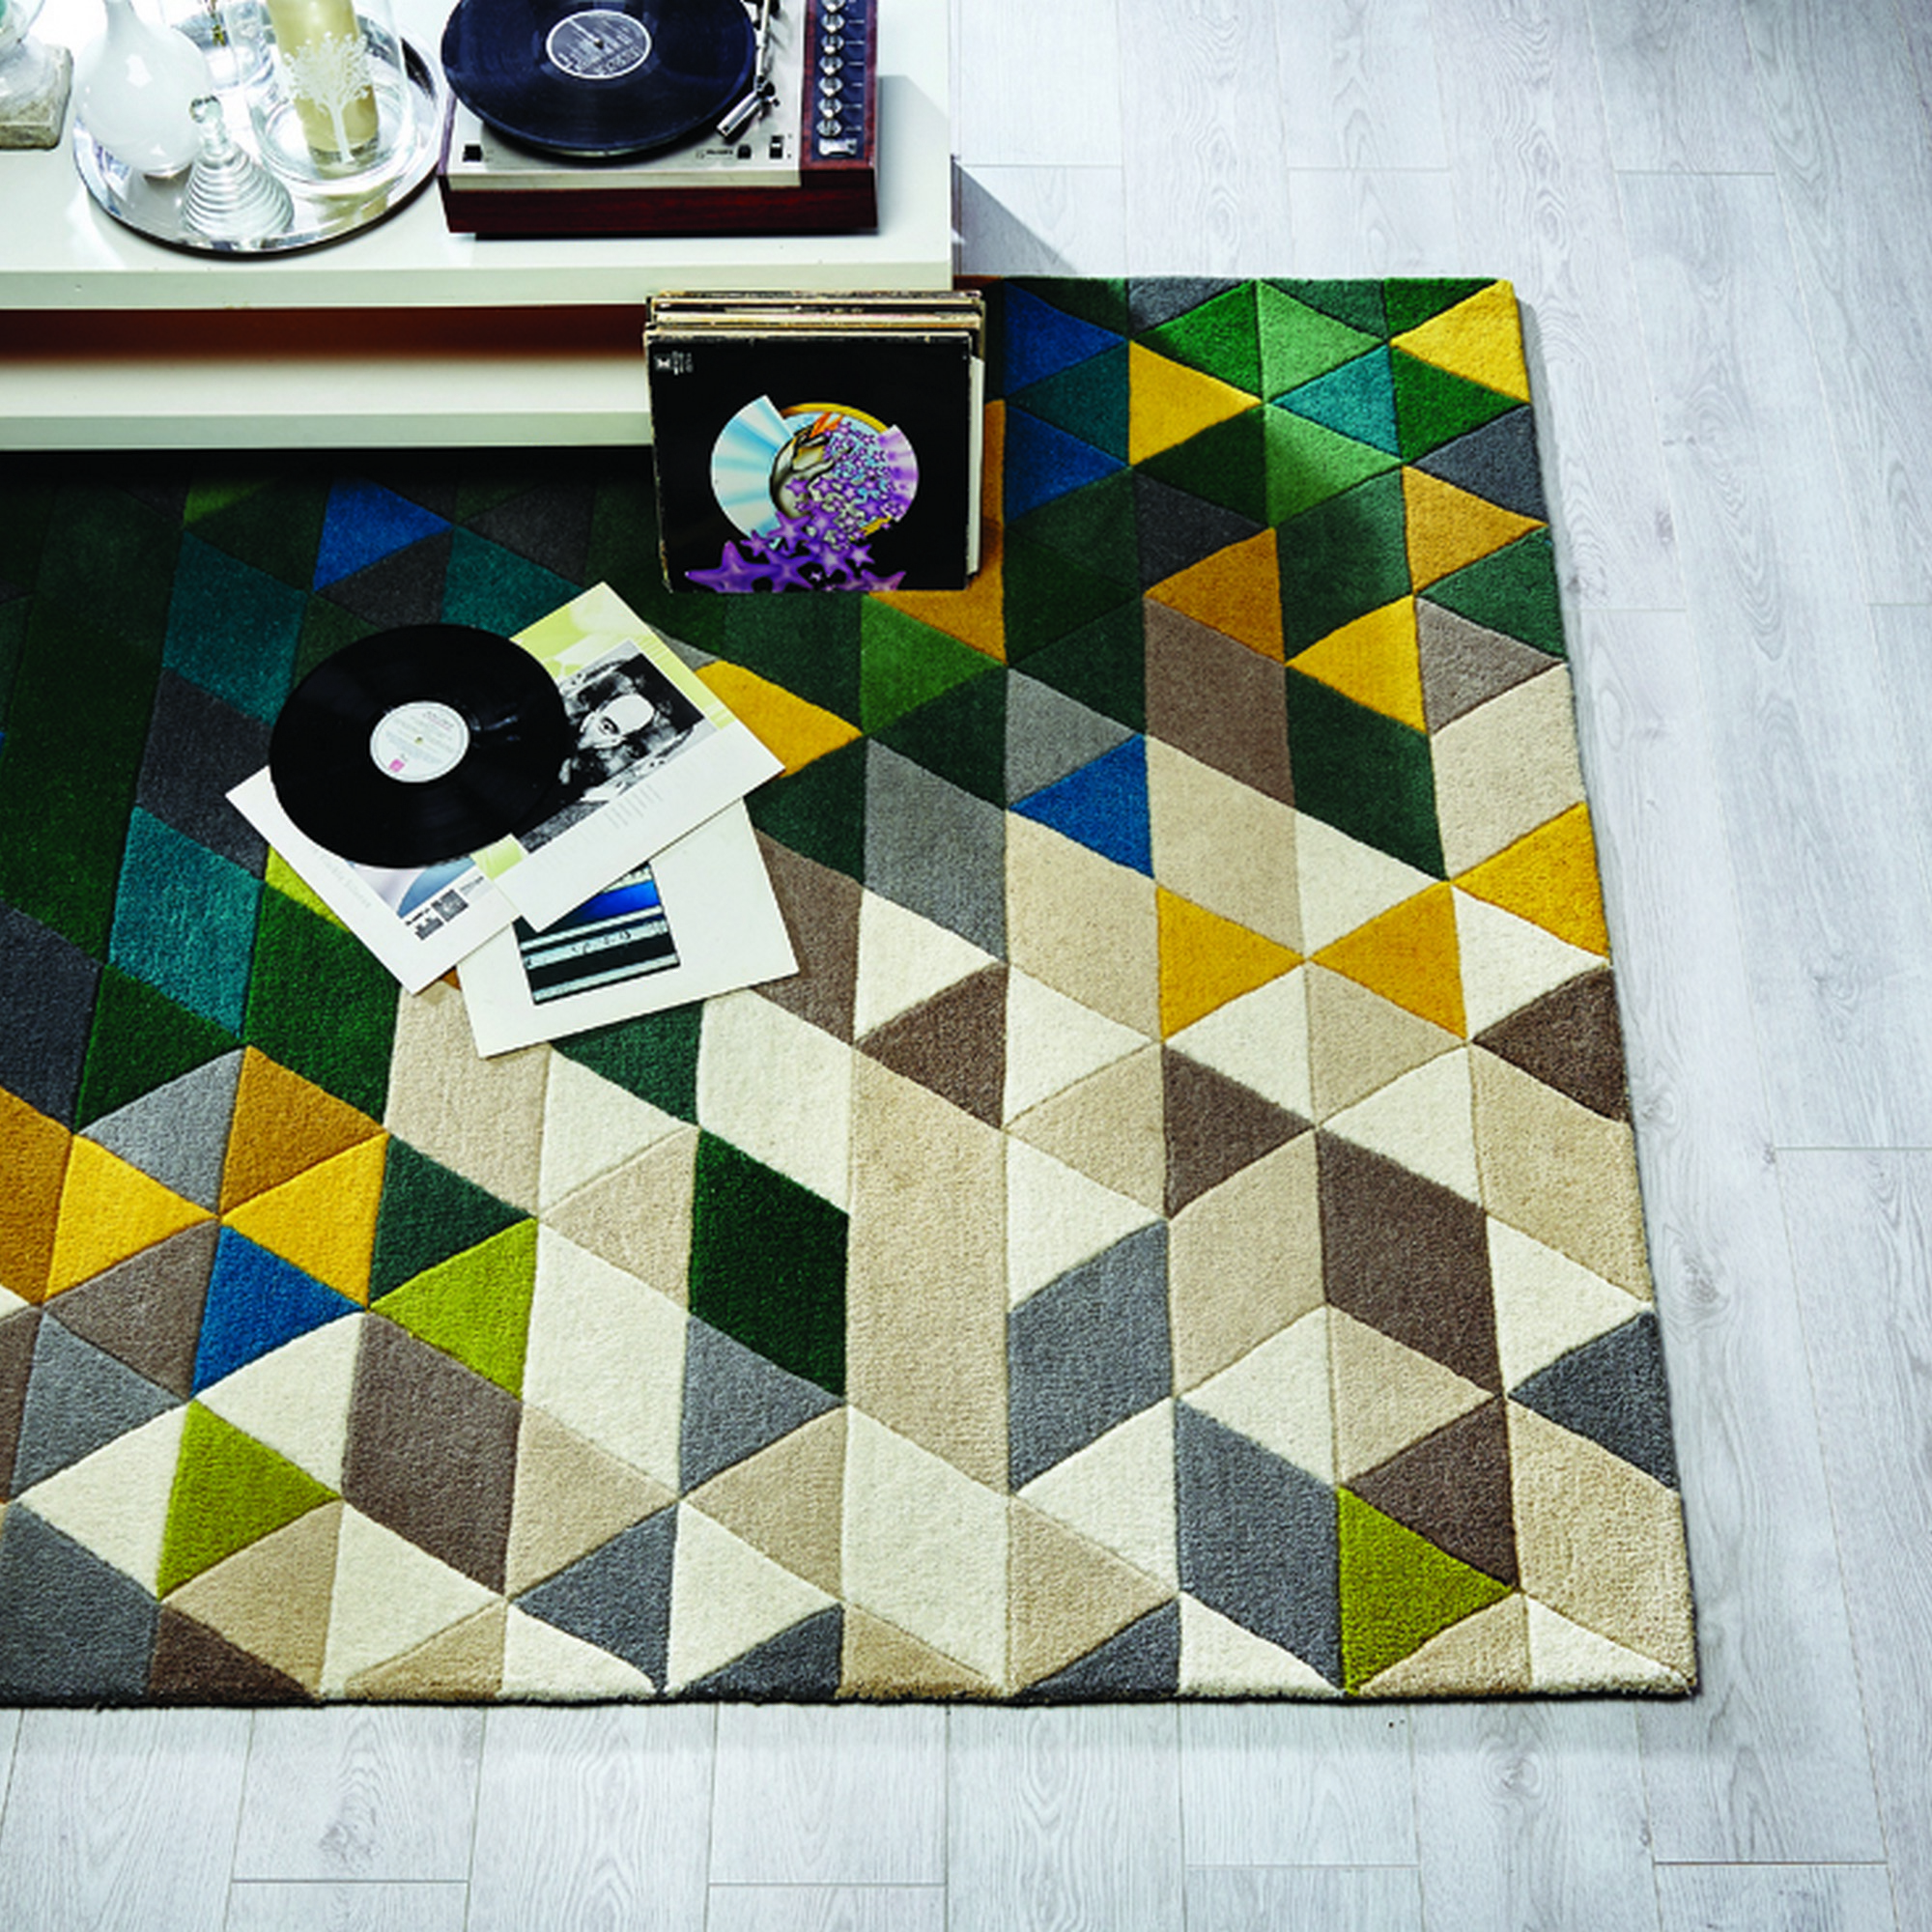 Illusion Prism Rugs in Green and Multicolours